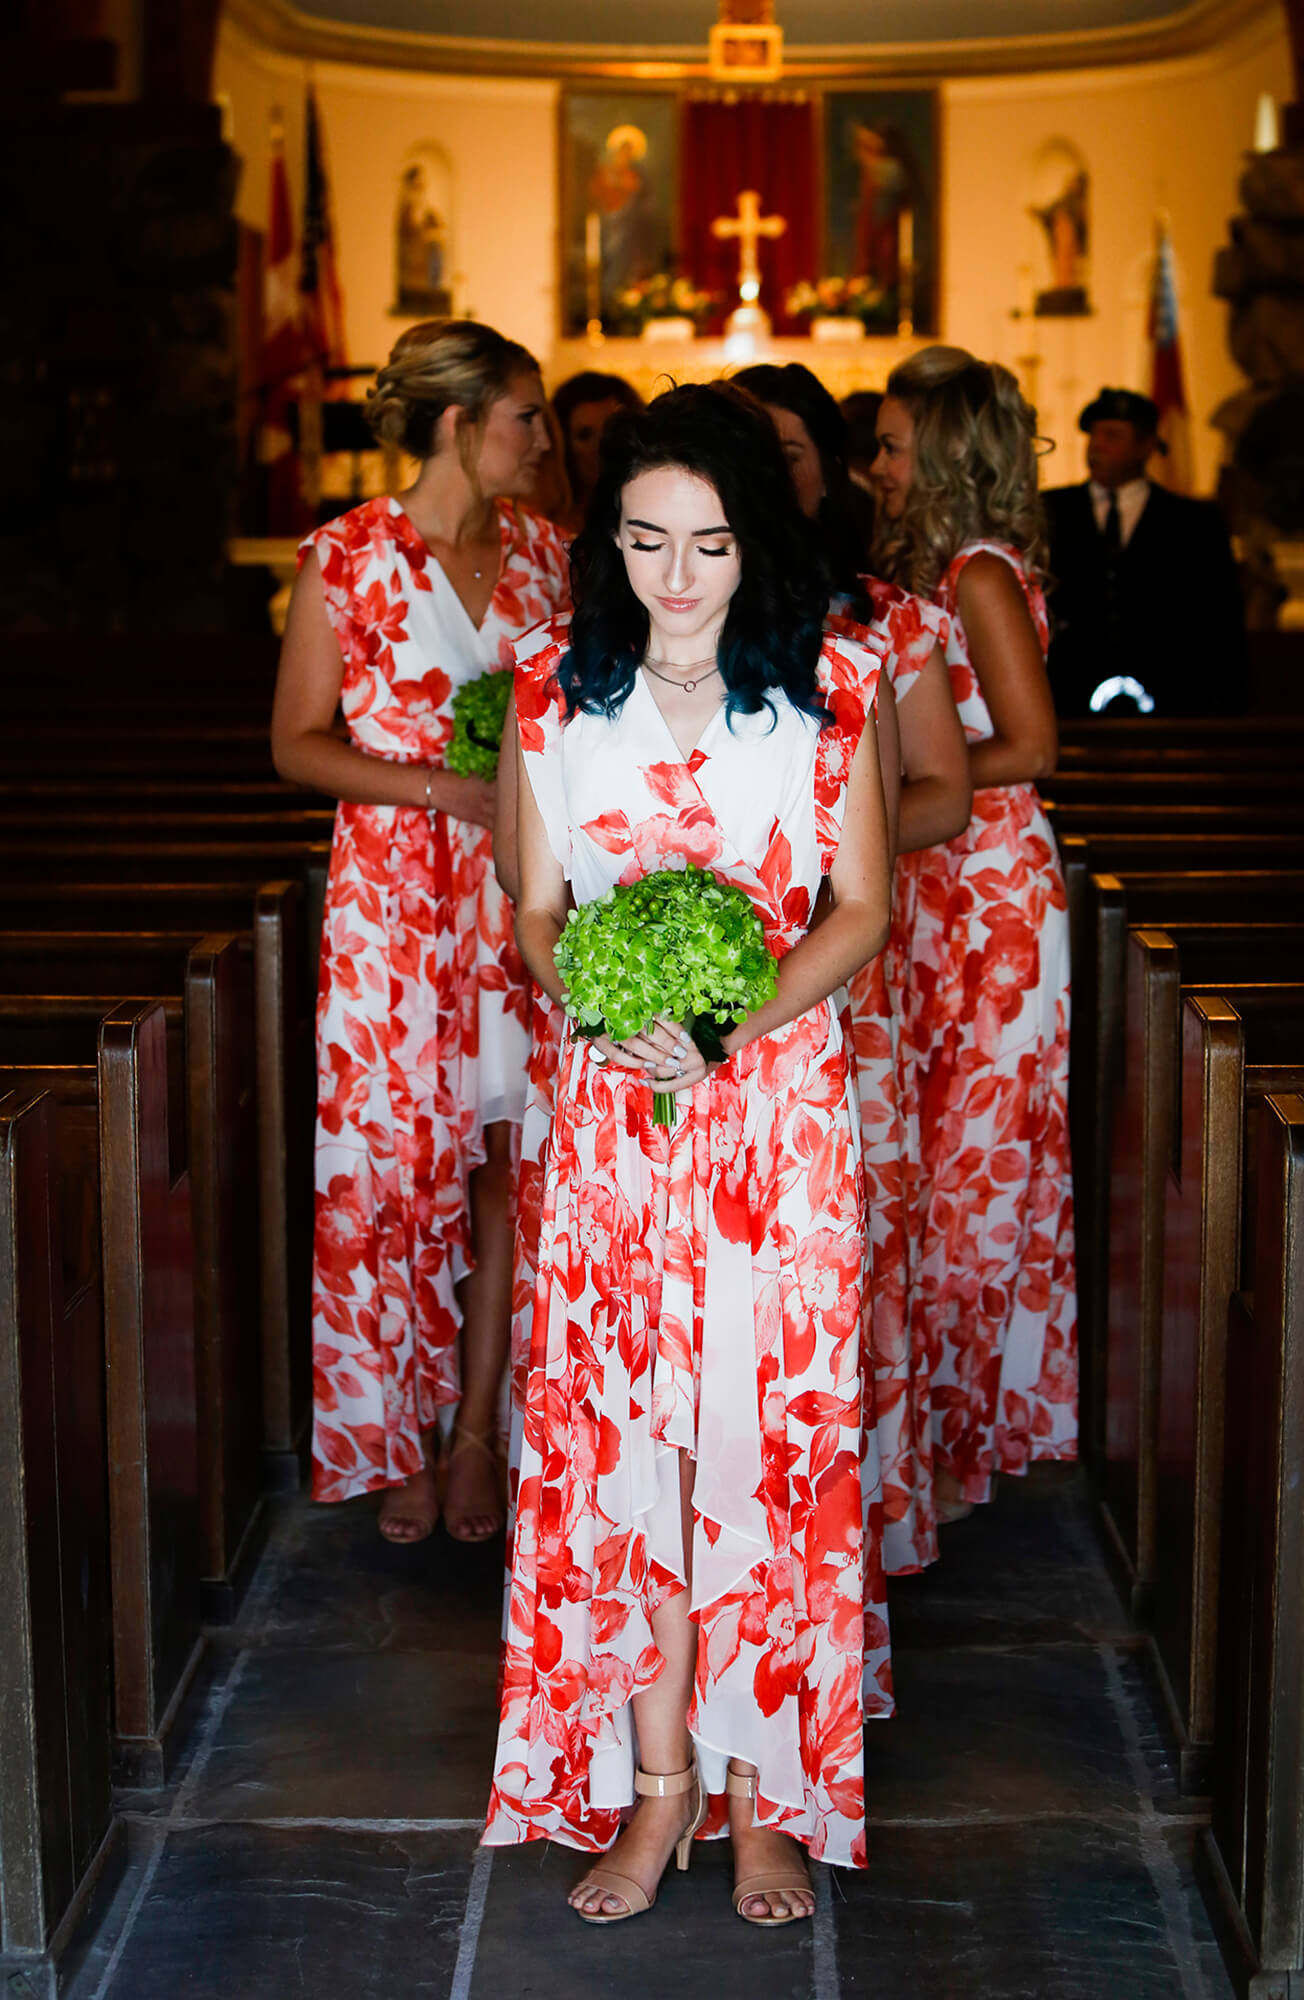 Wedding photography of bridesmaid in the church before the wedding in Kennebunk Maine